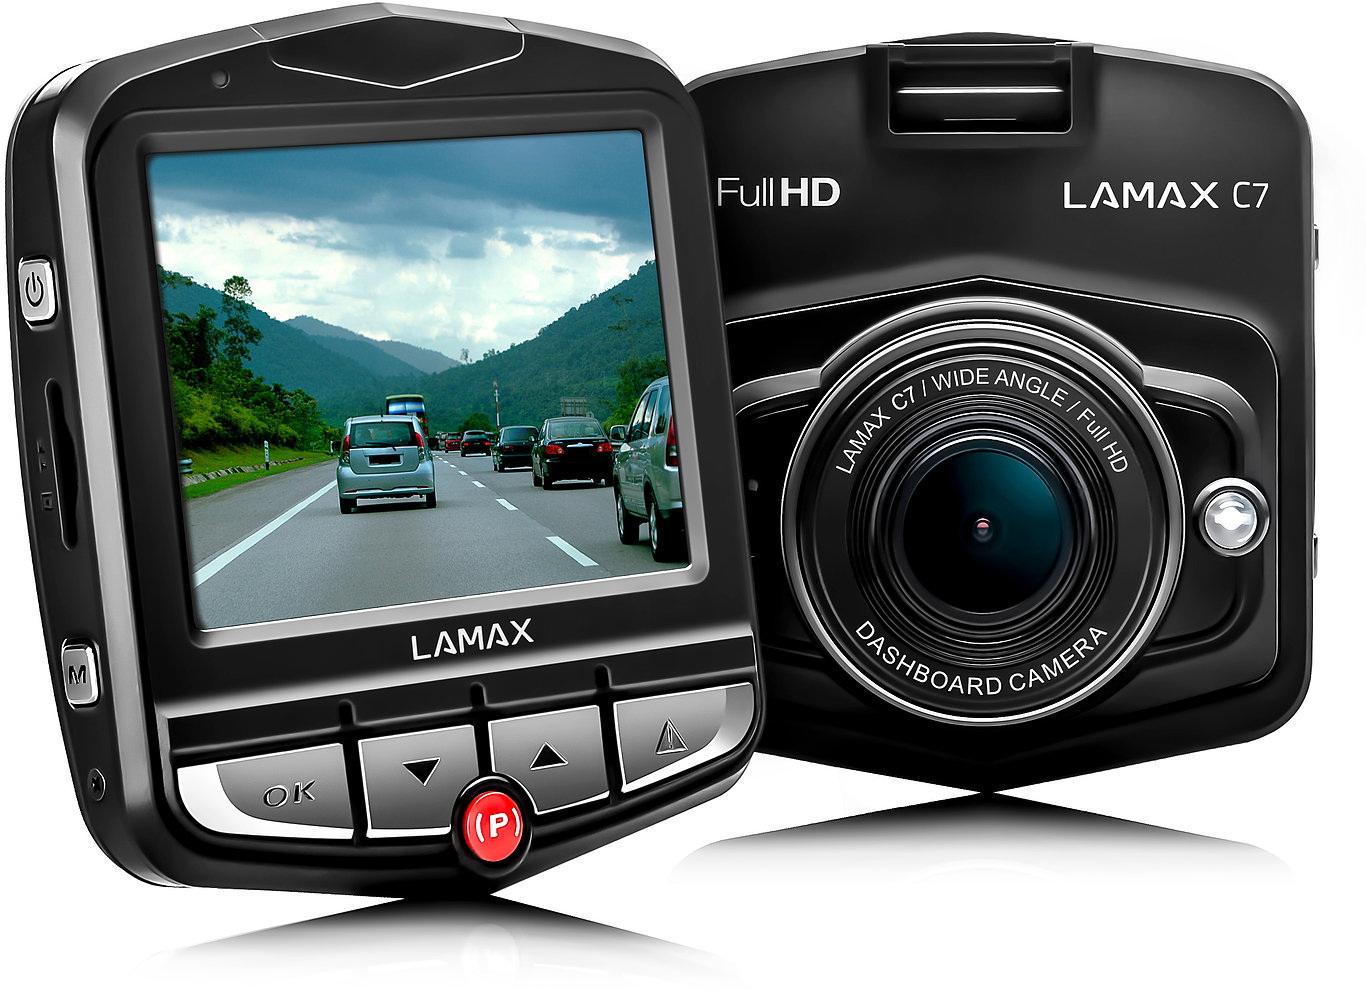 LAMAX C7 - It will surprise you in every aspect